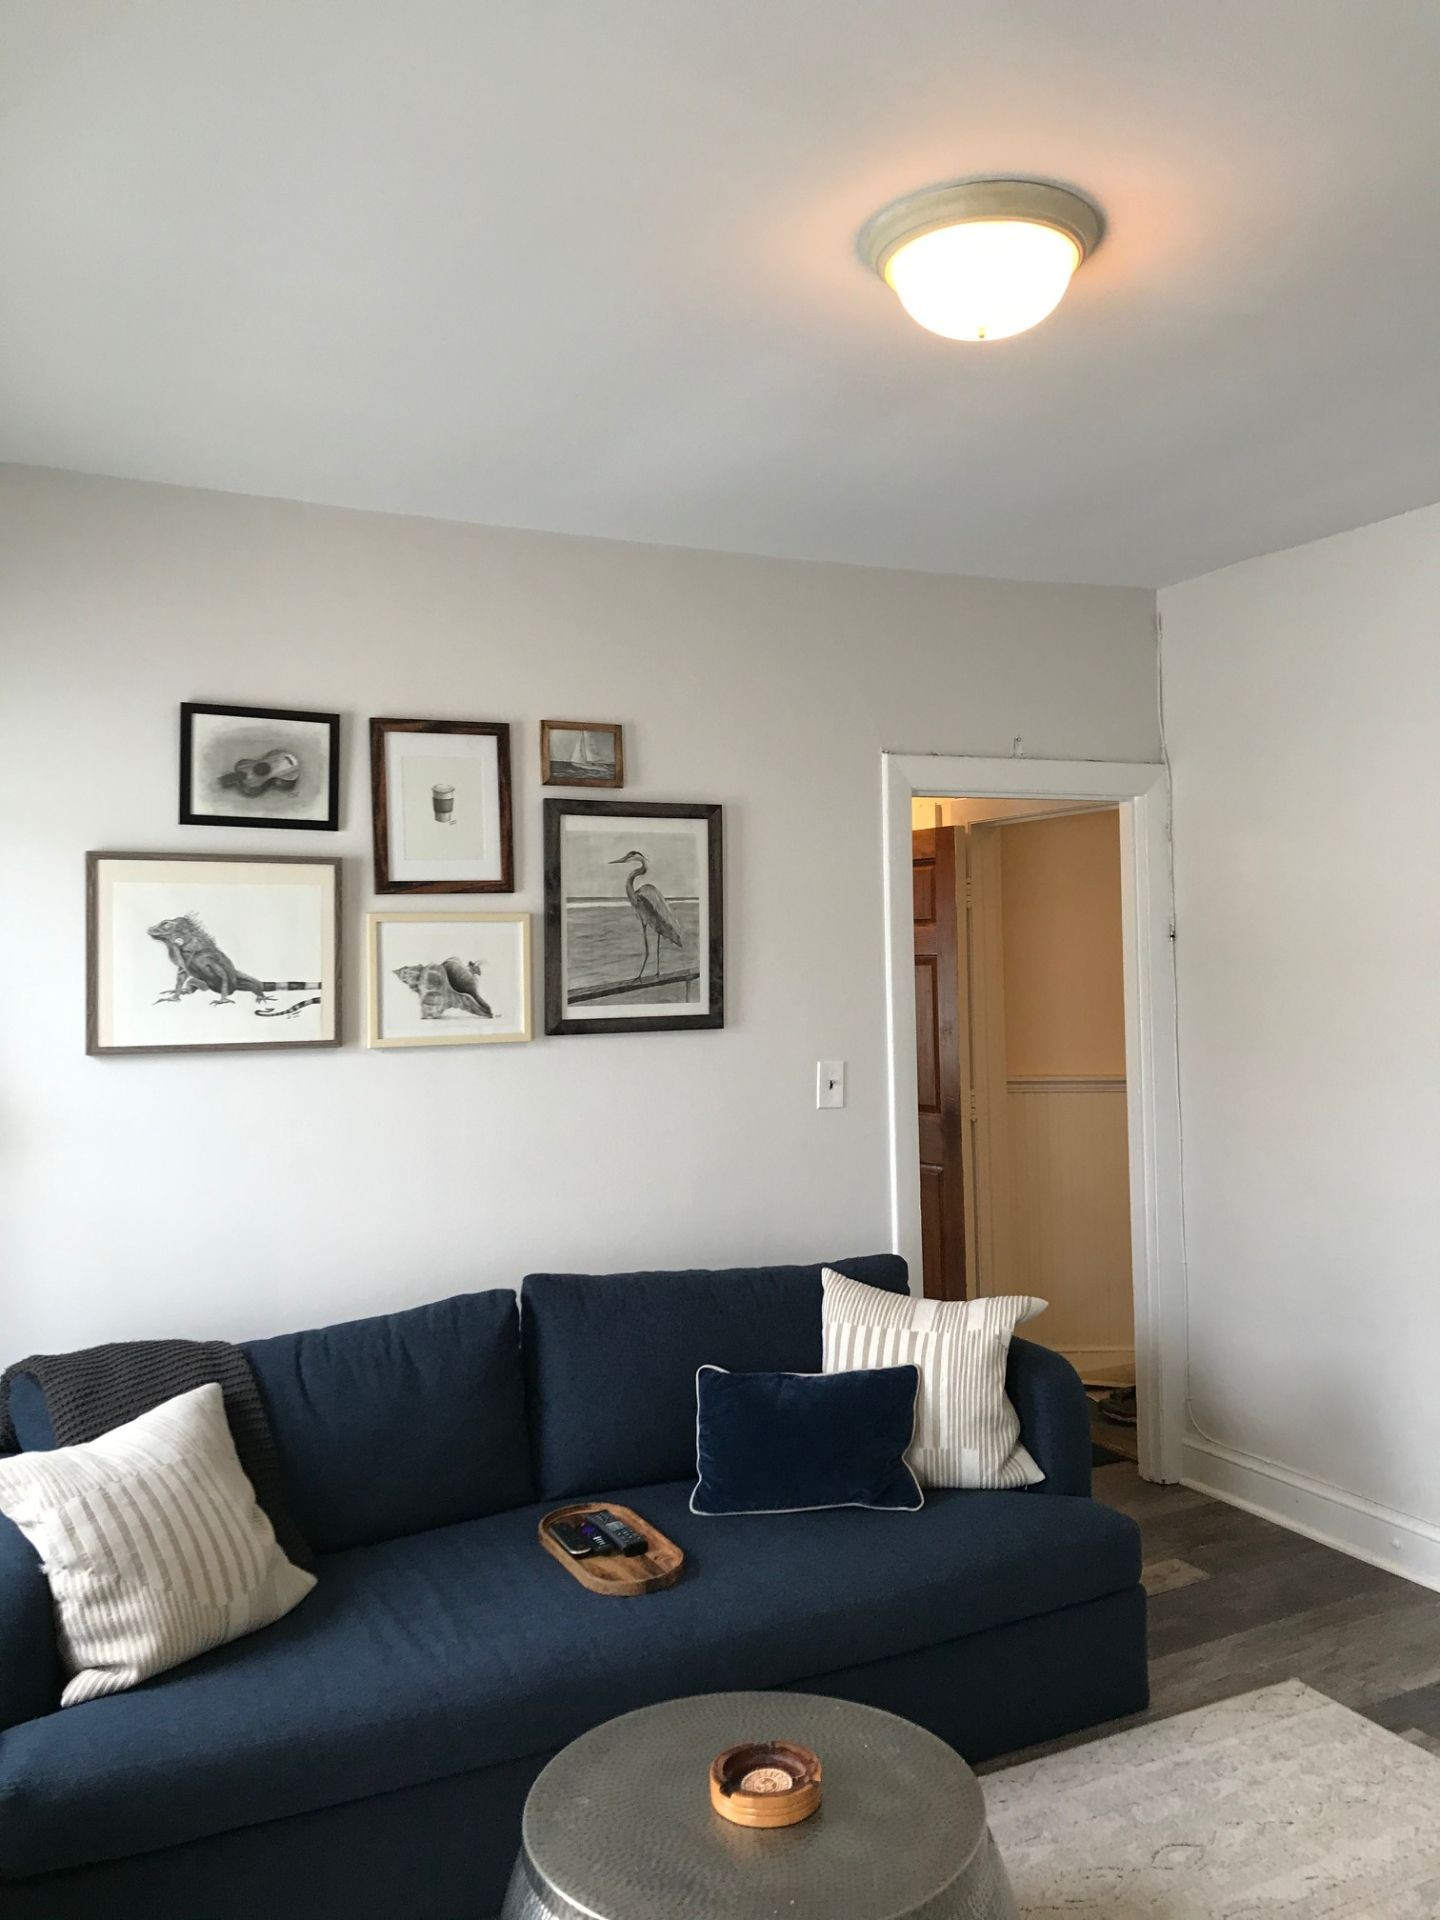 2 Beds, 1 Bath apartment in Winthrop for $2,400